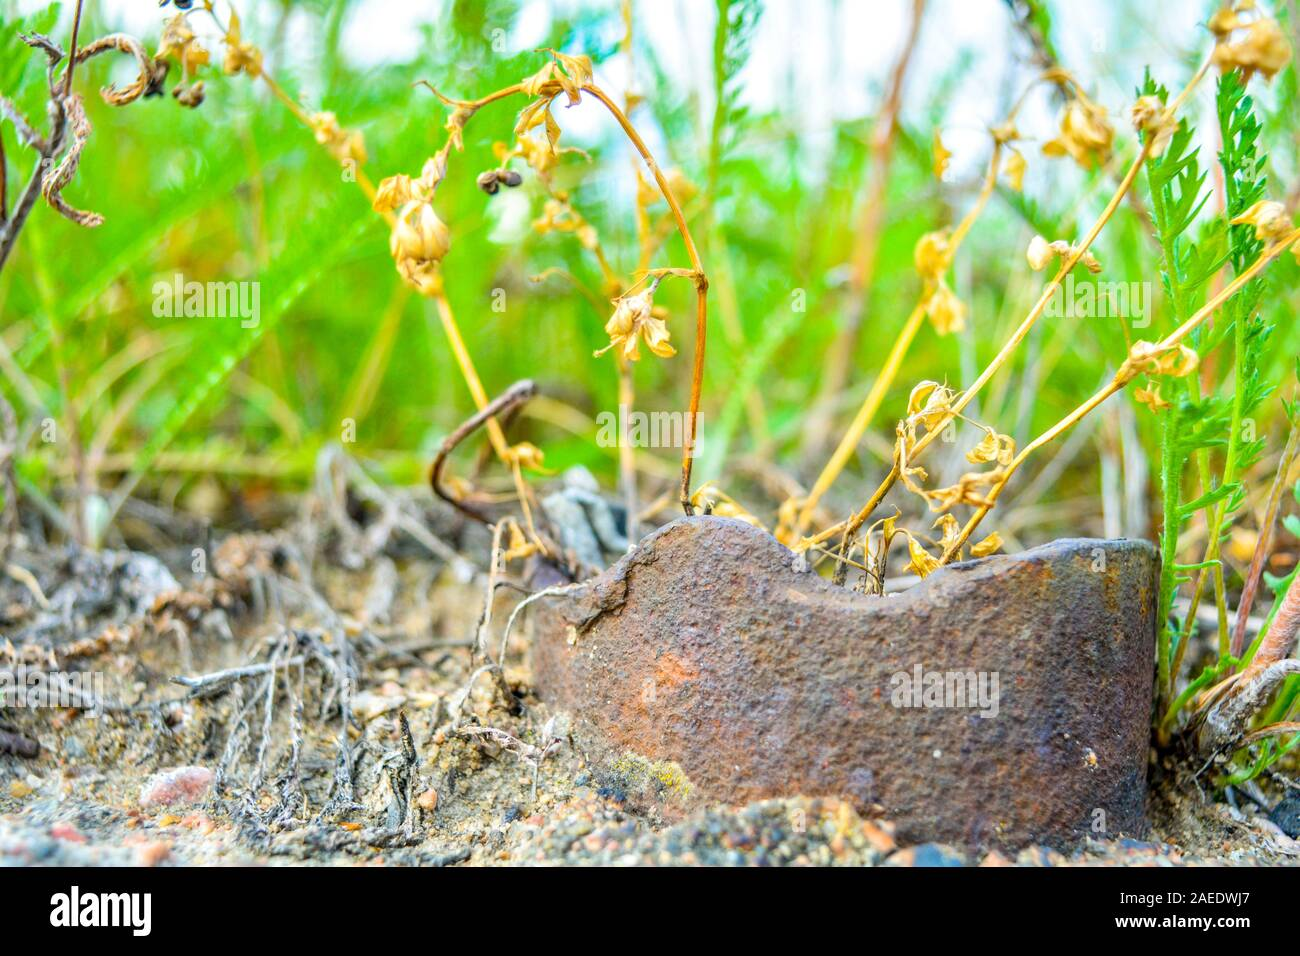 Close Up Of Orange Seed Capsules Of Ordinary Moss Among Dry And